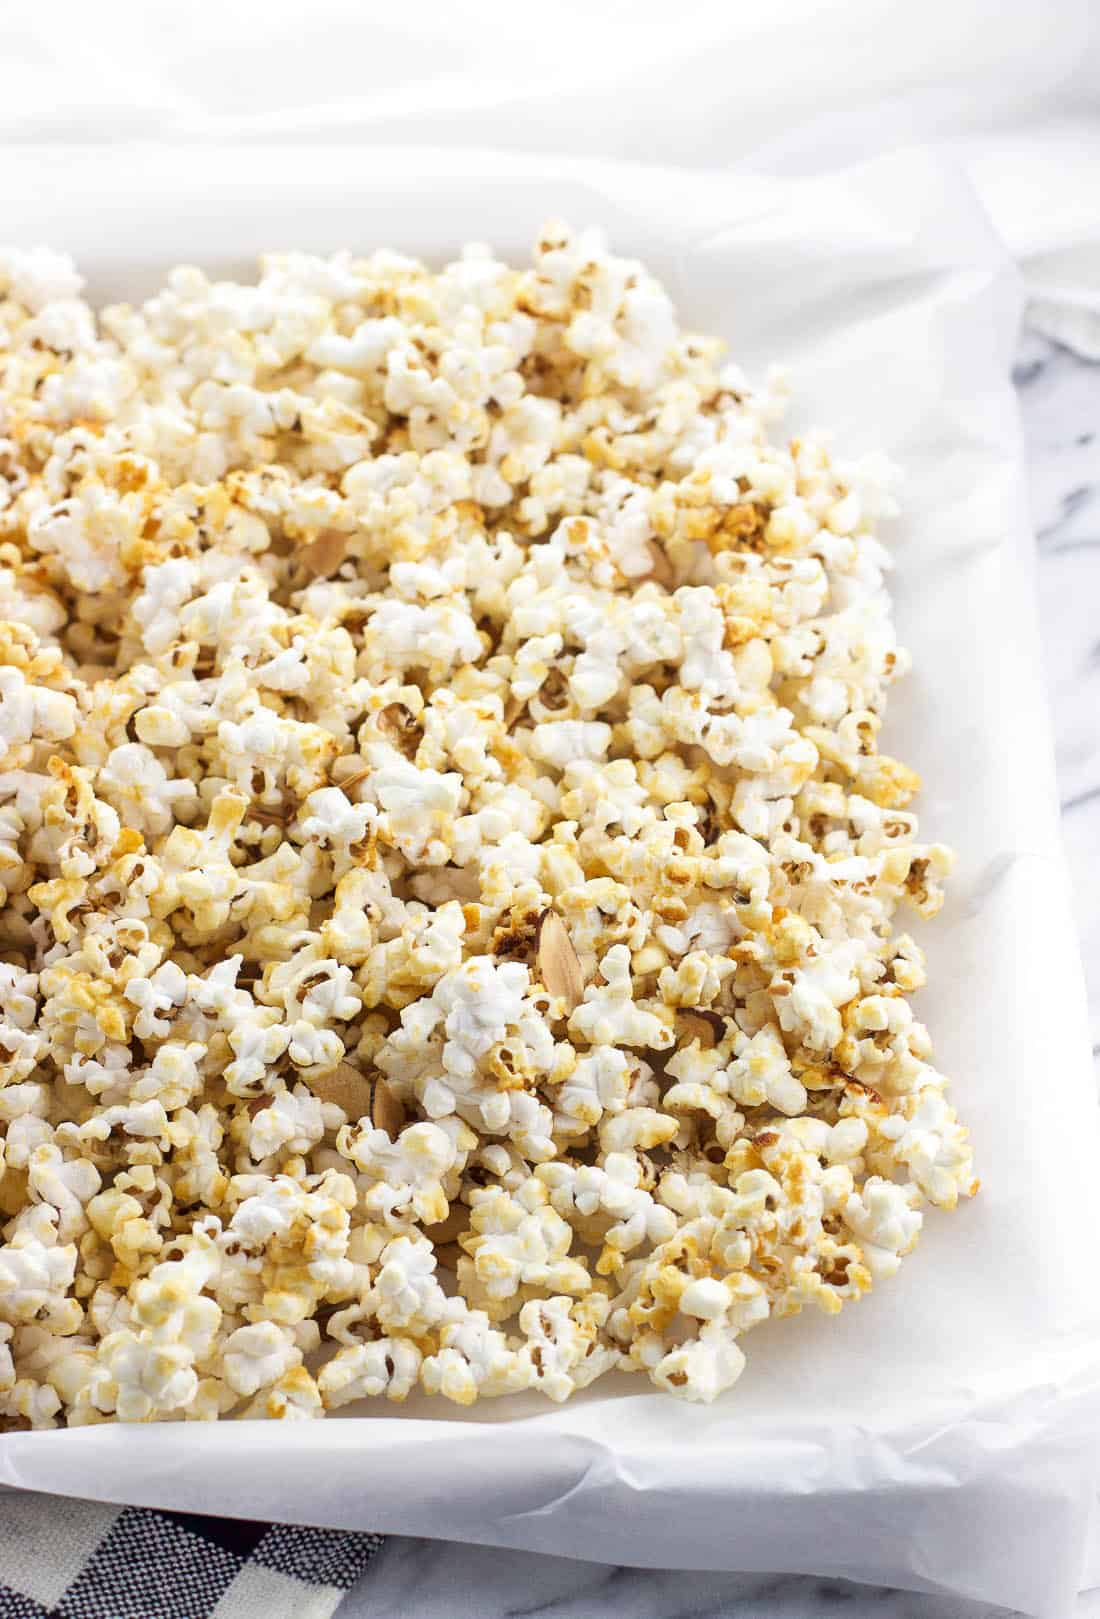 Kettle corn spread out on a parchment paper-lined baking sheet